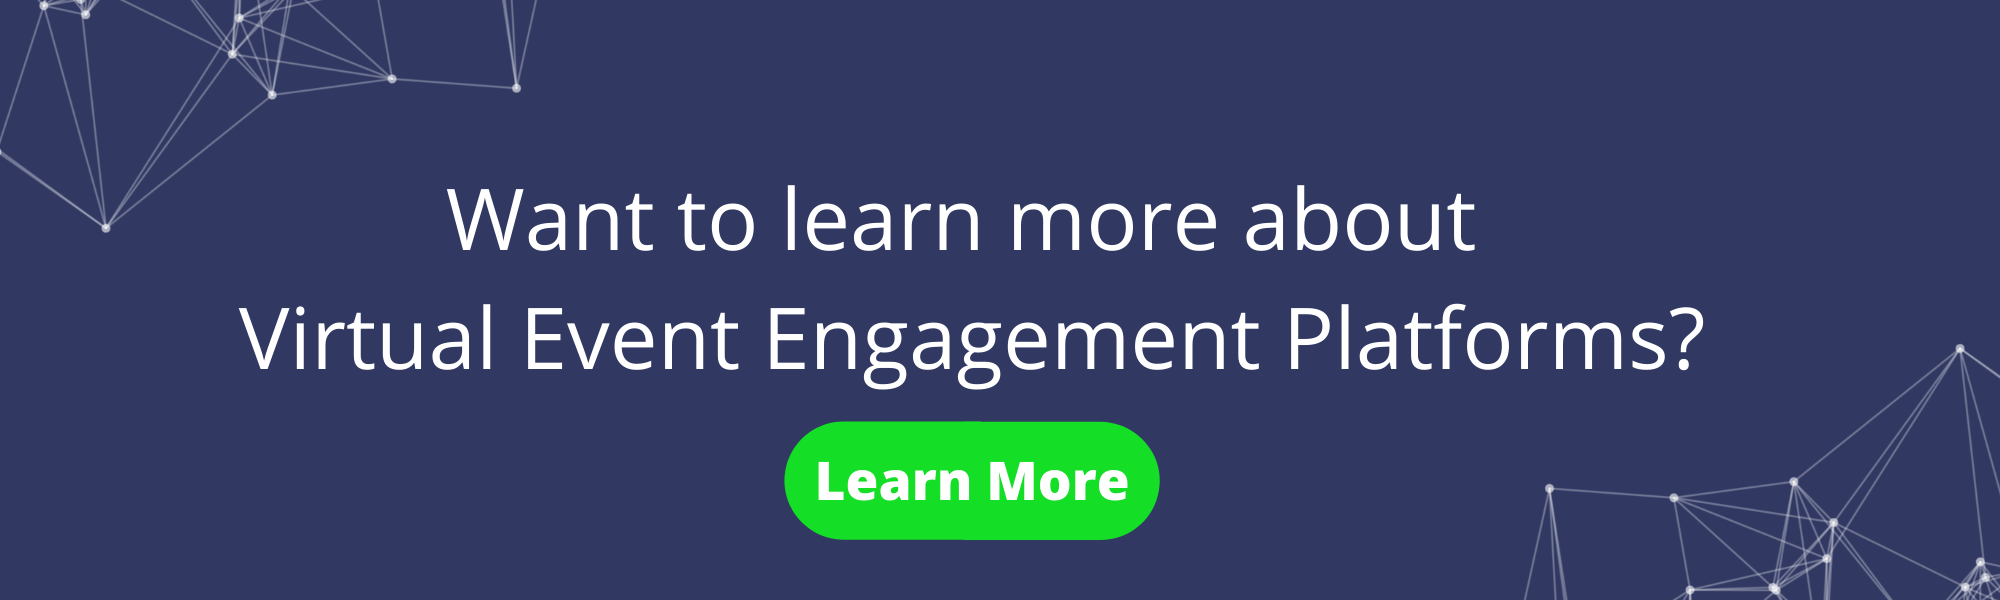 CTA Learn More About Virtual Event Engagement Platforms